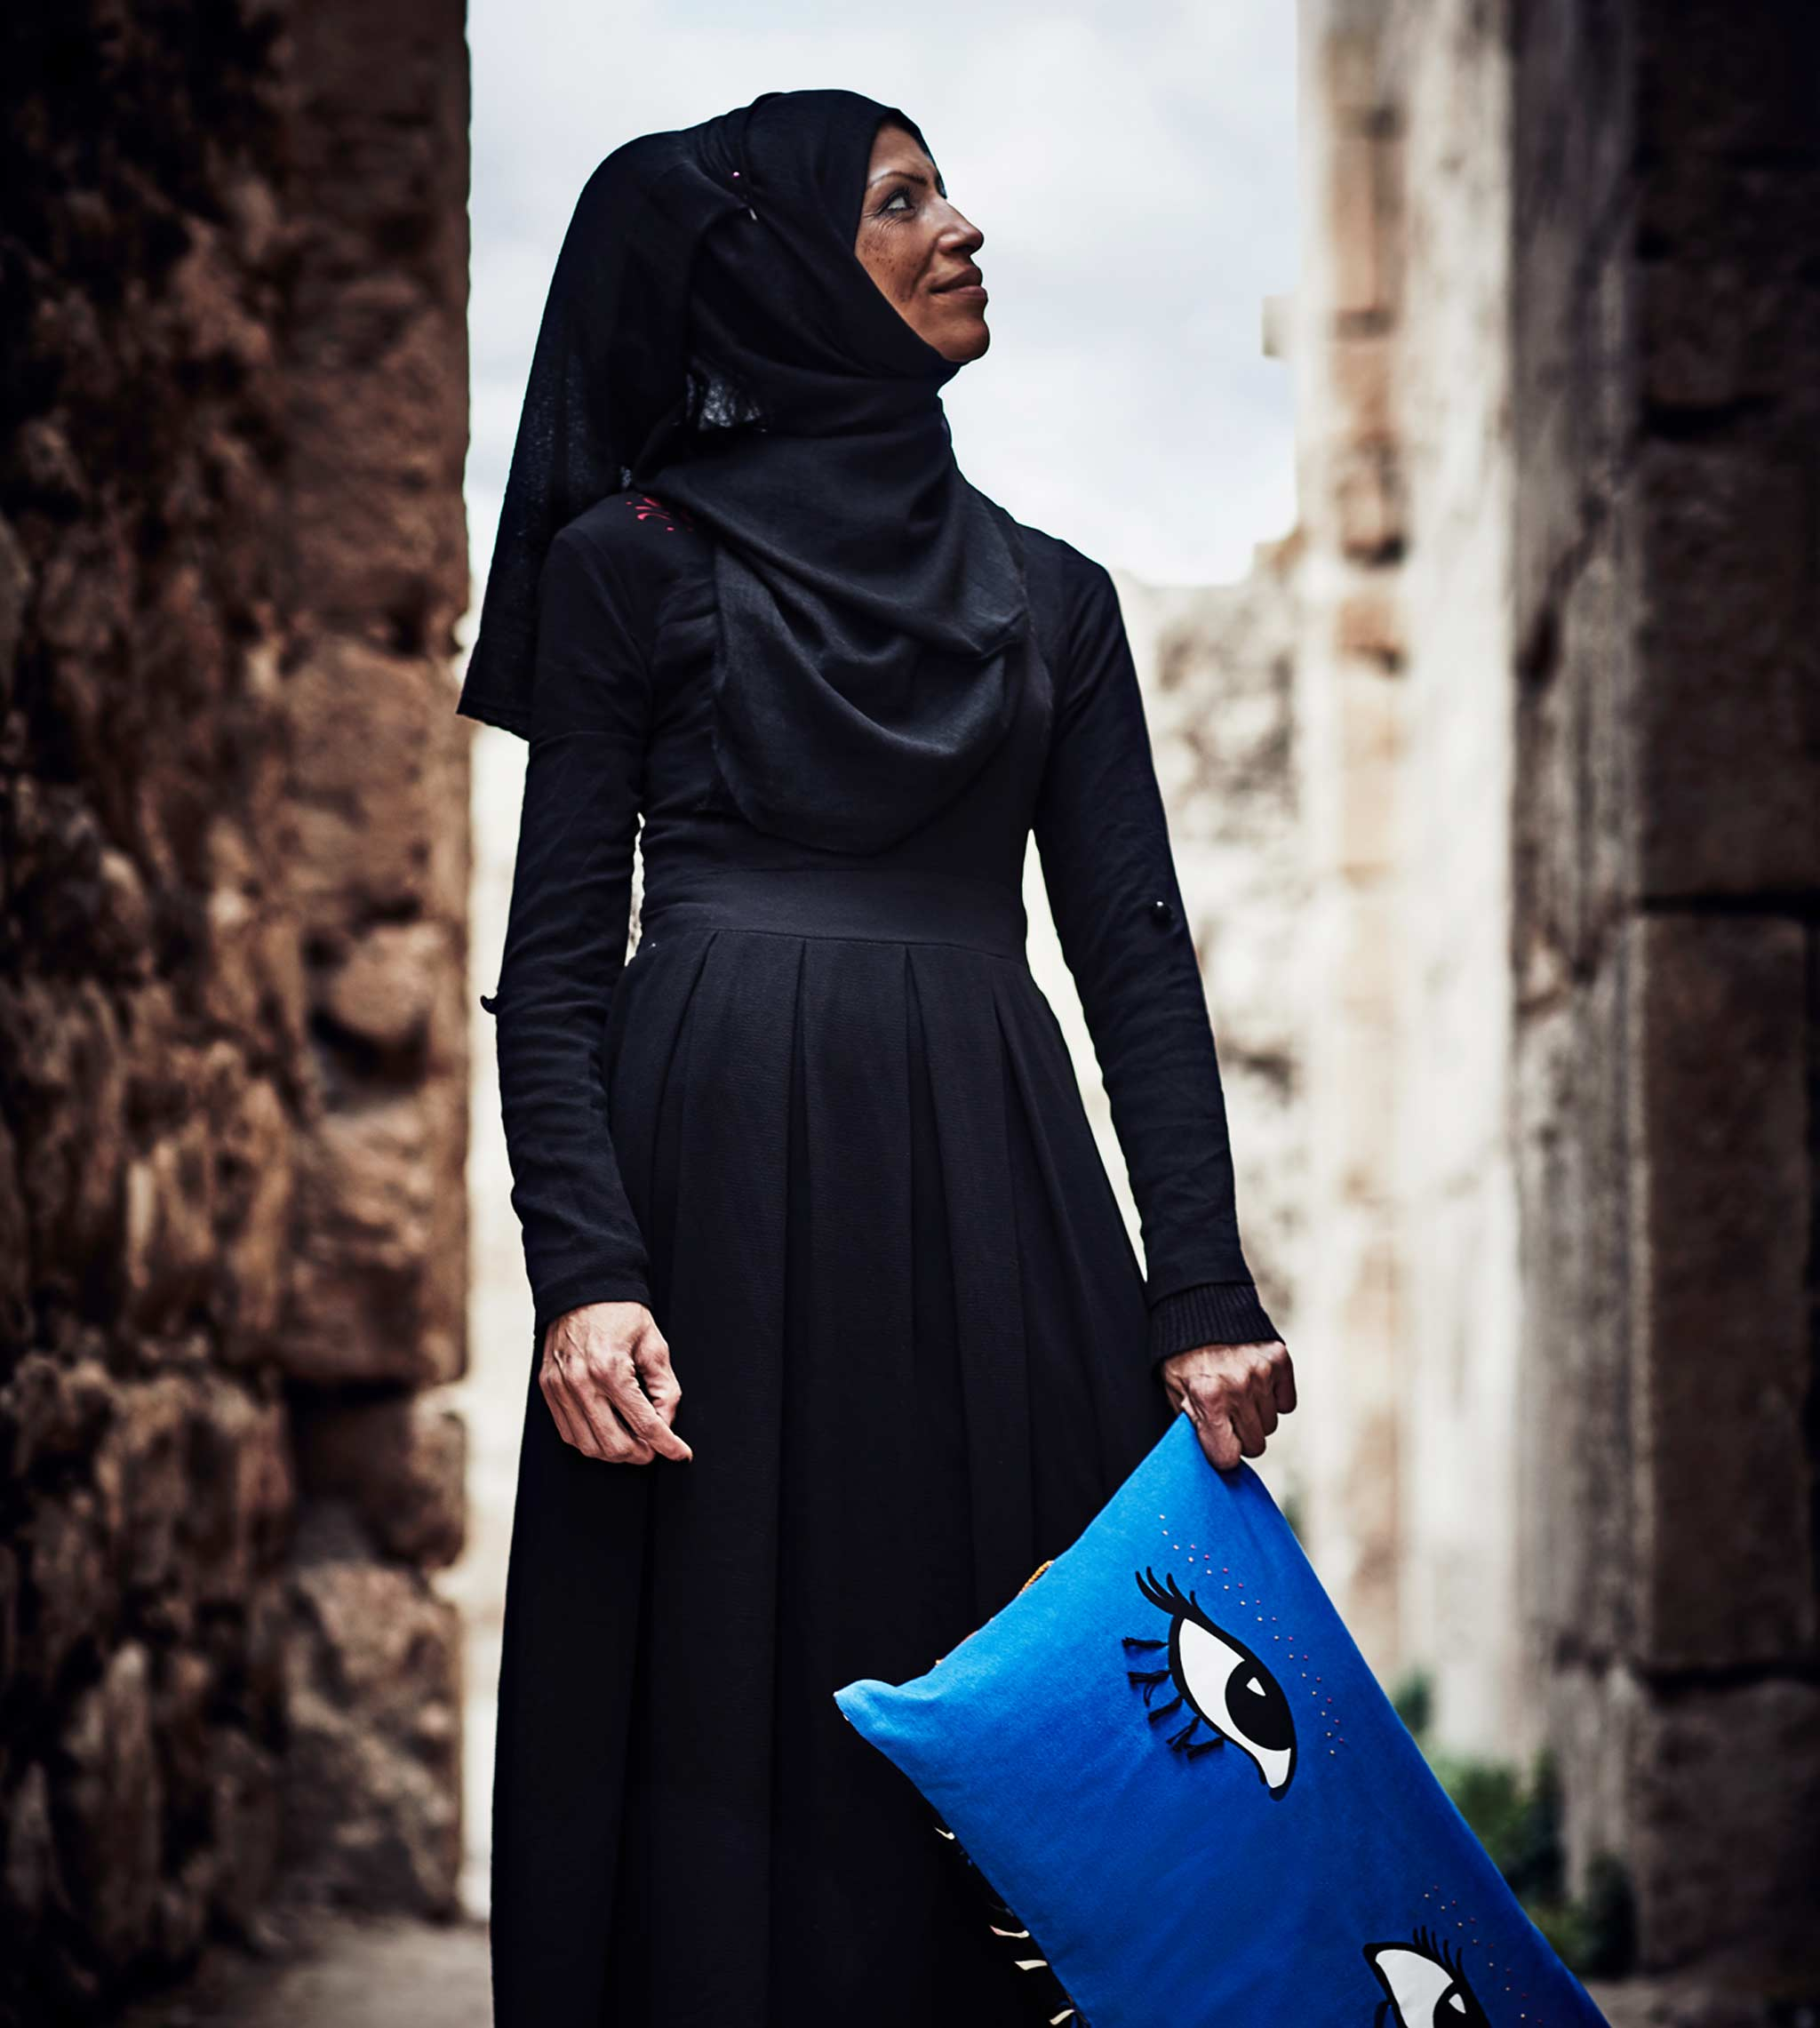 Tahani Al Khatib, artisan from Palestine collaborated with IKEA and Jordan River Foundation in creating the collection TILLTALANDE.